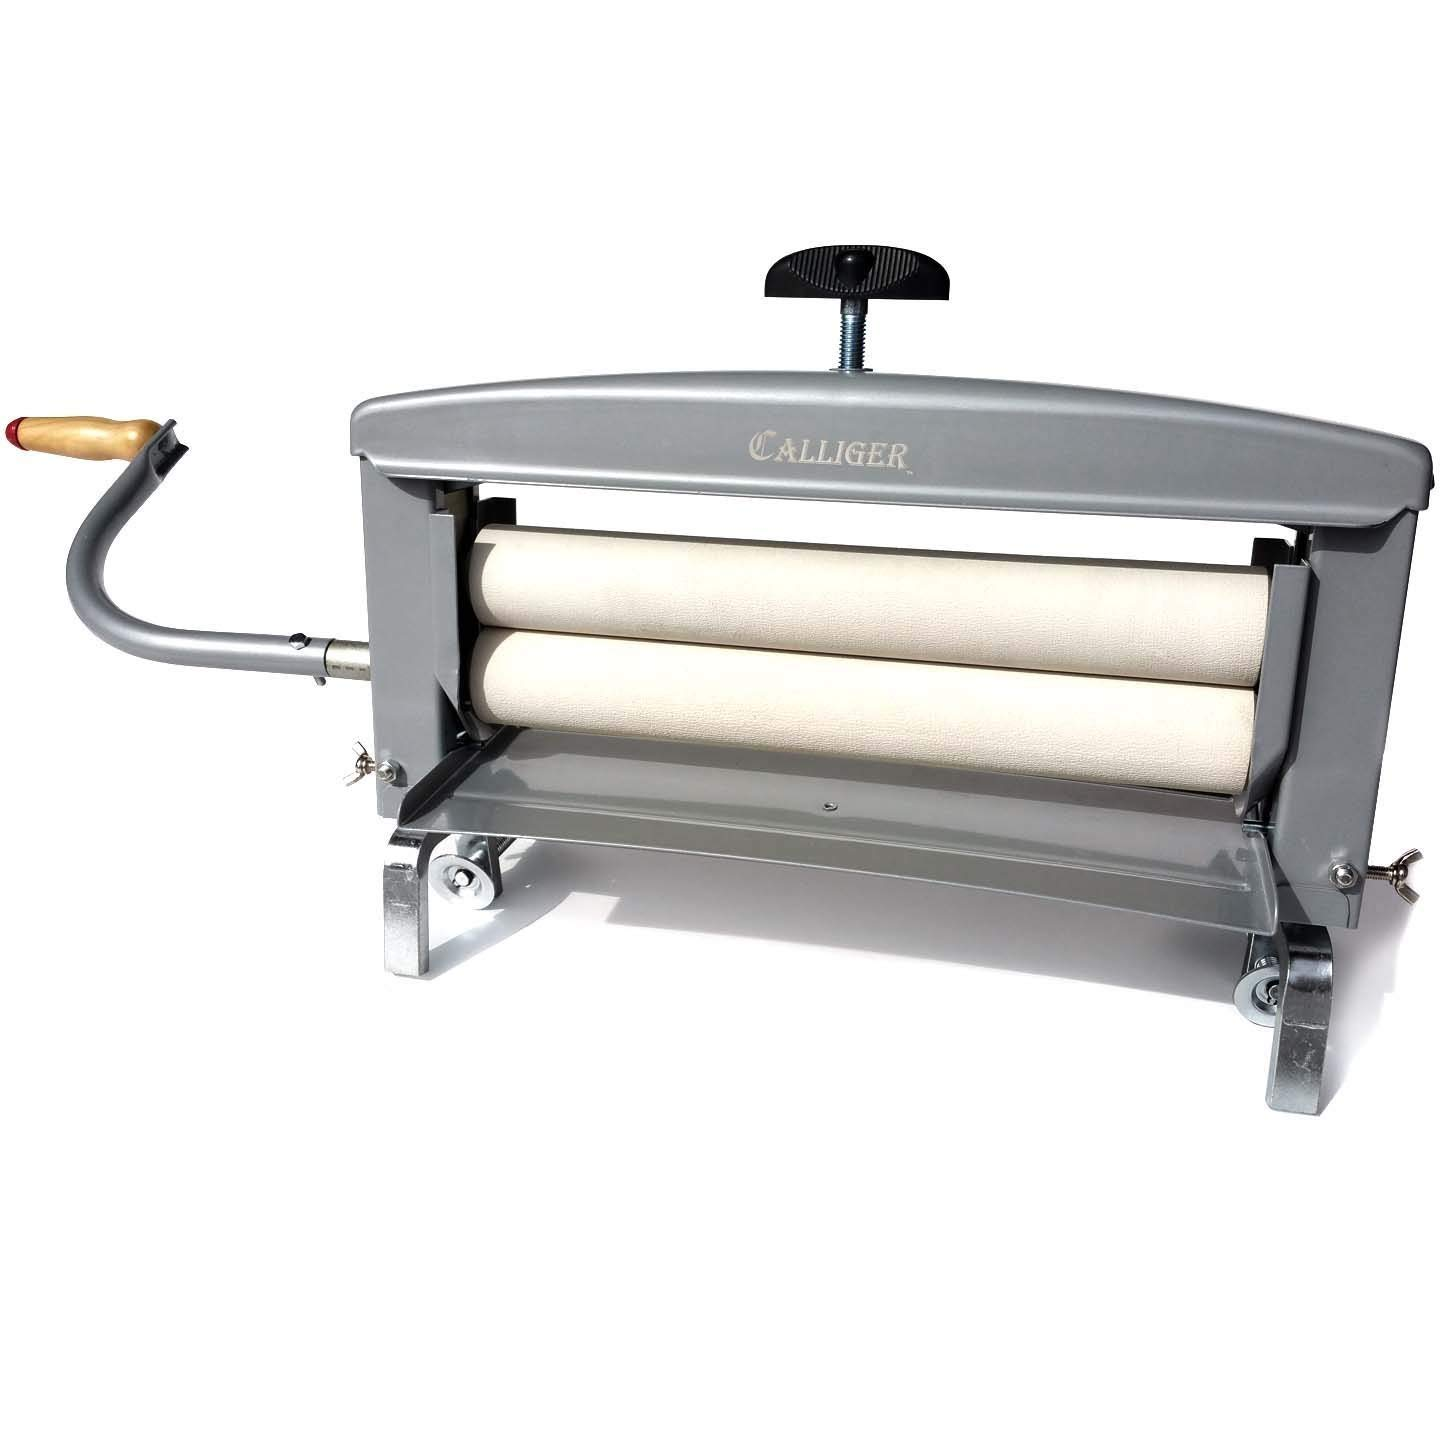 """Calliger Hand Crank Clothes Wringer 14"""" Rollers - More Space to Wring Than Any Other Brand 